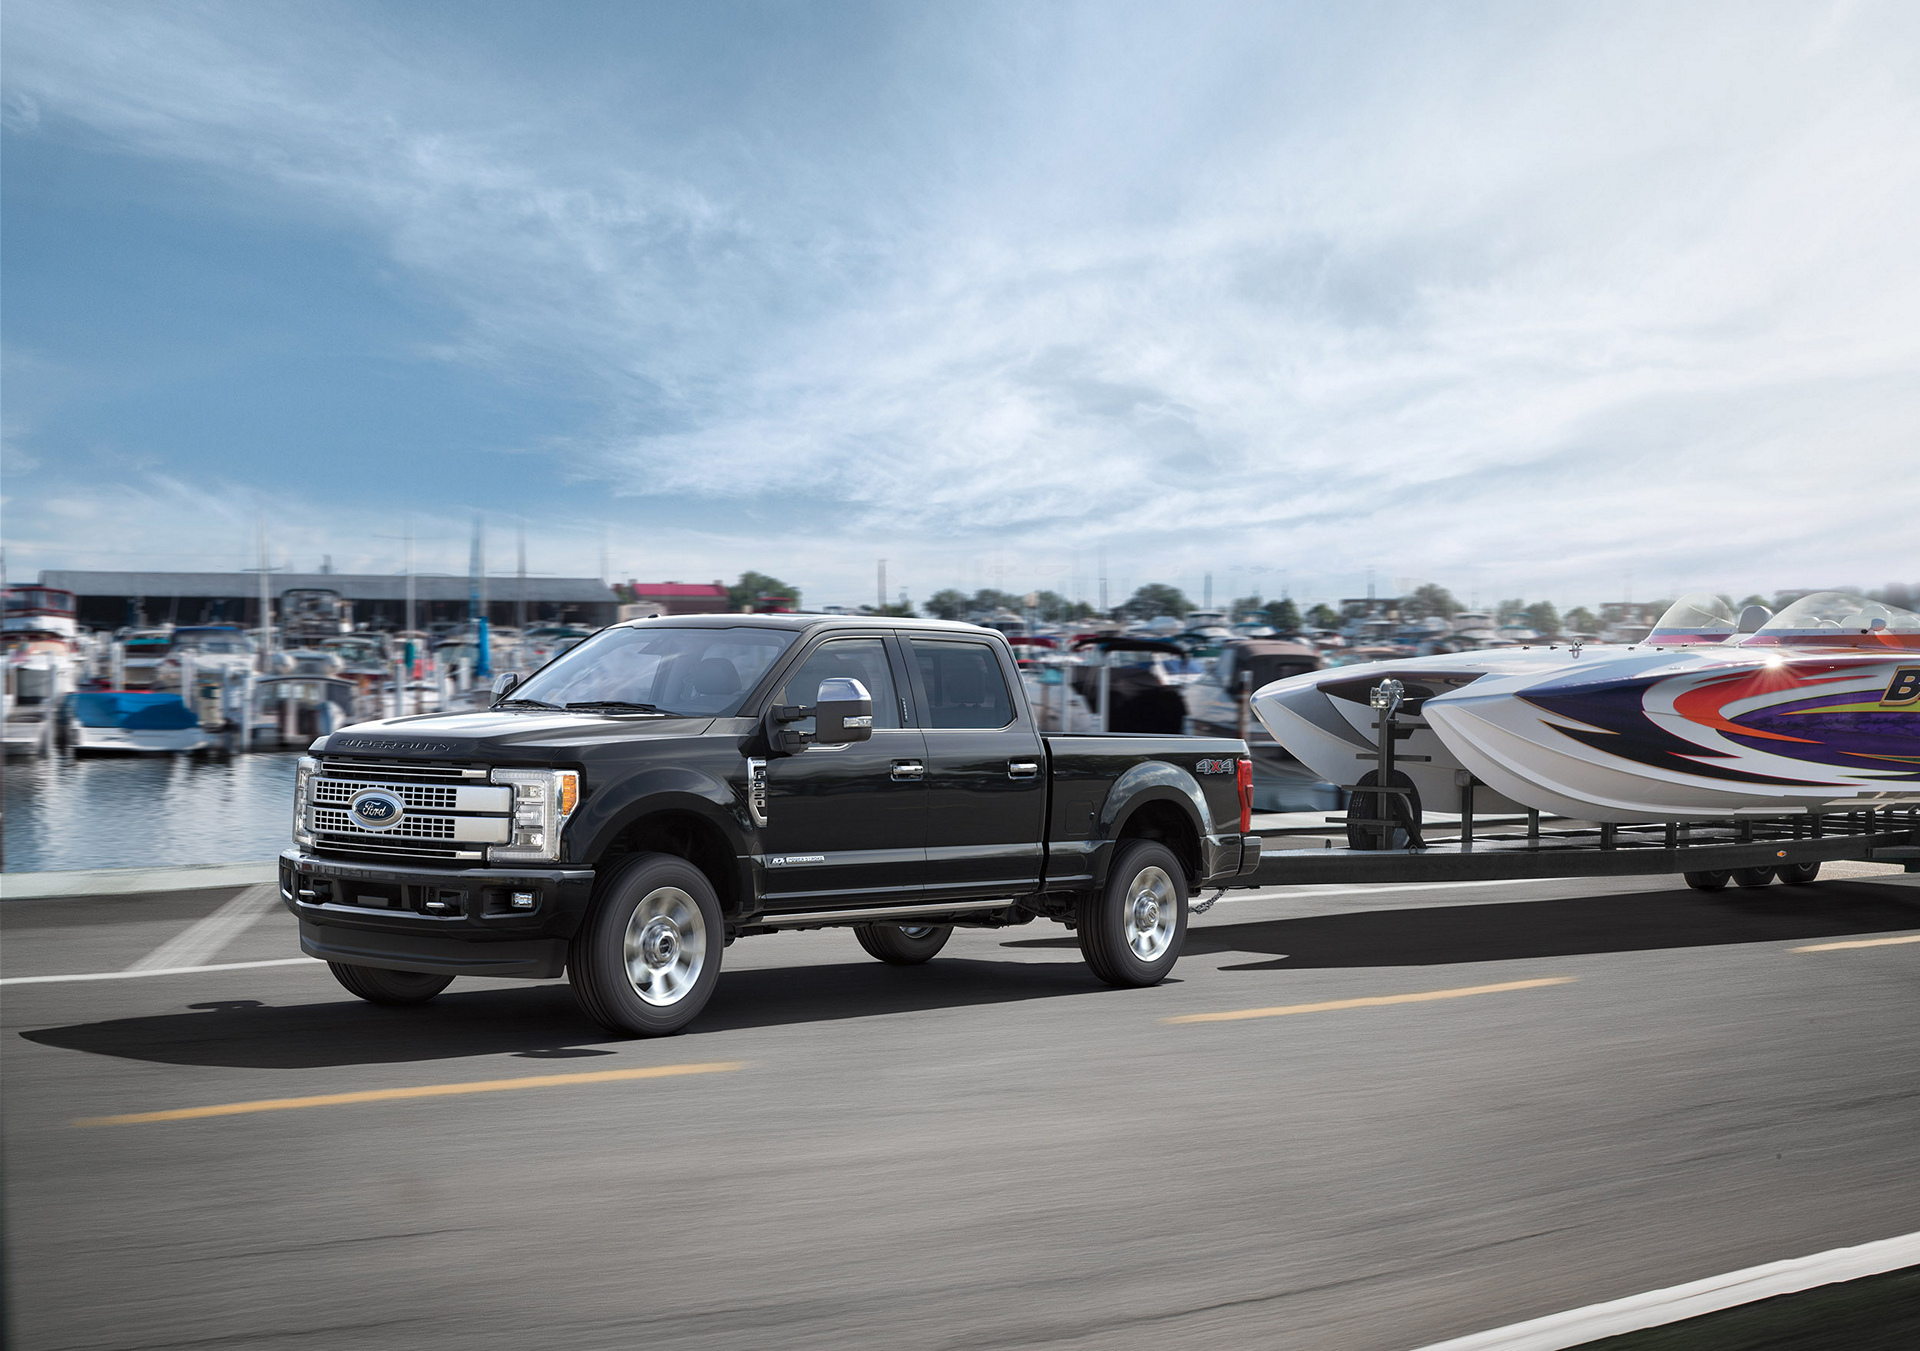 2017 Ford F-Series Super Duty © Ford Motor Company